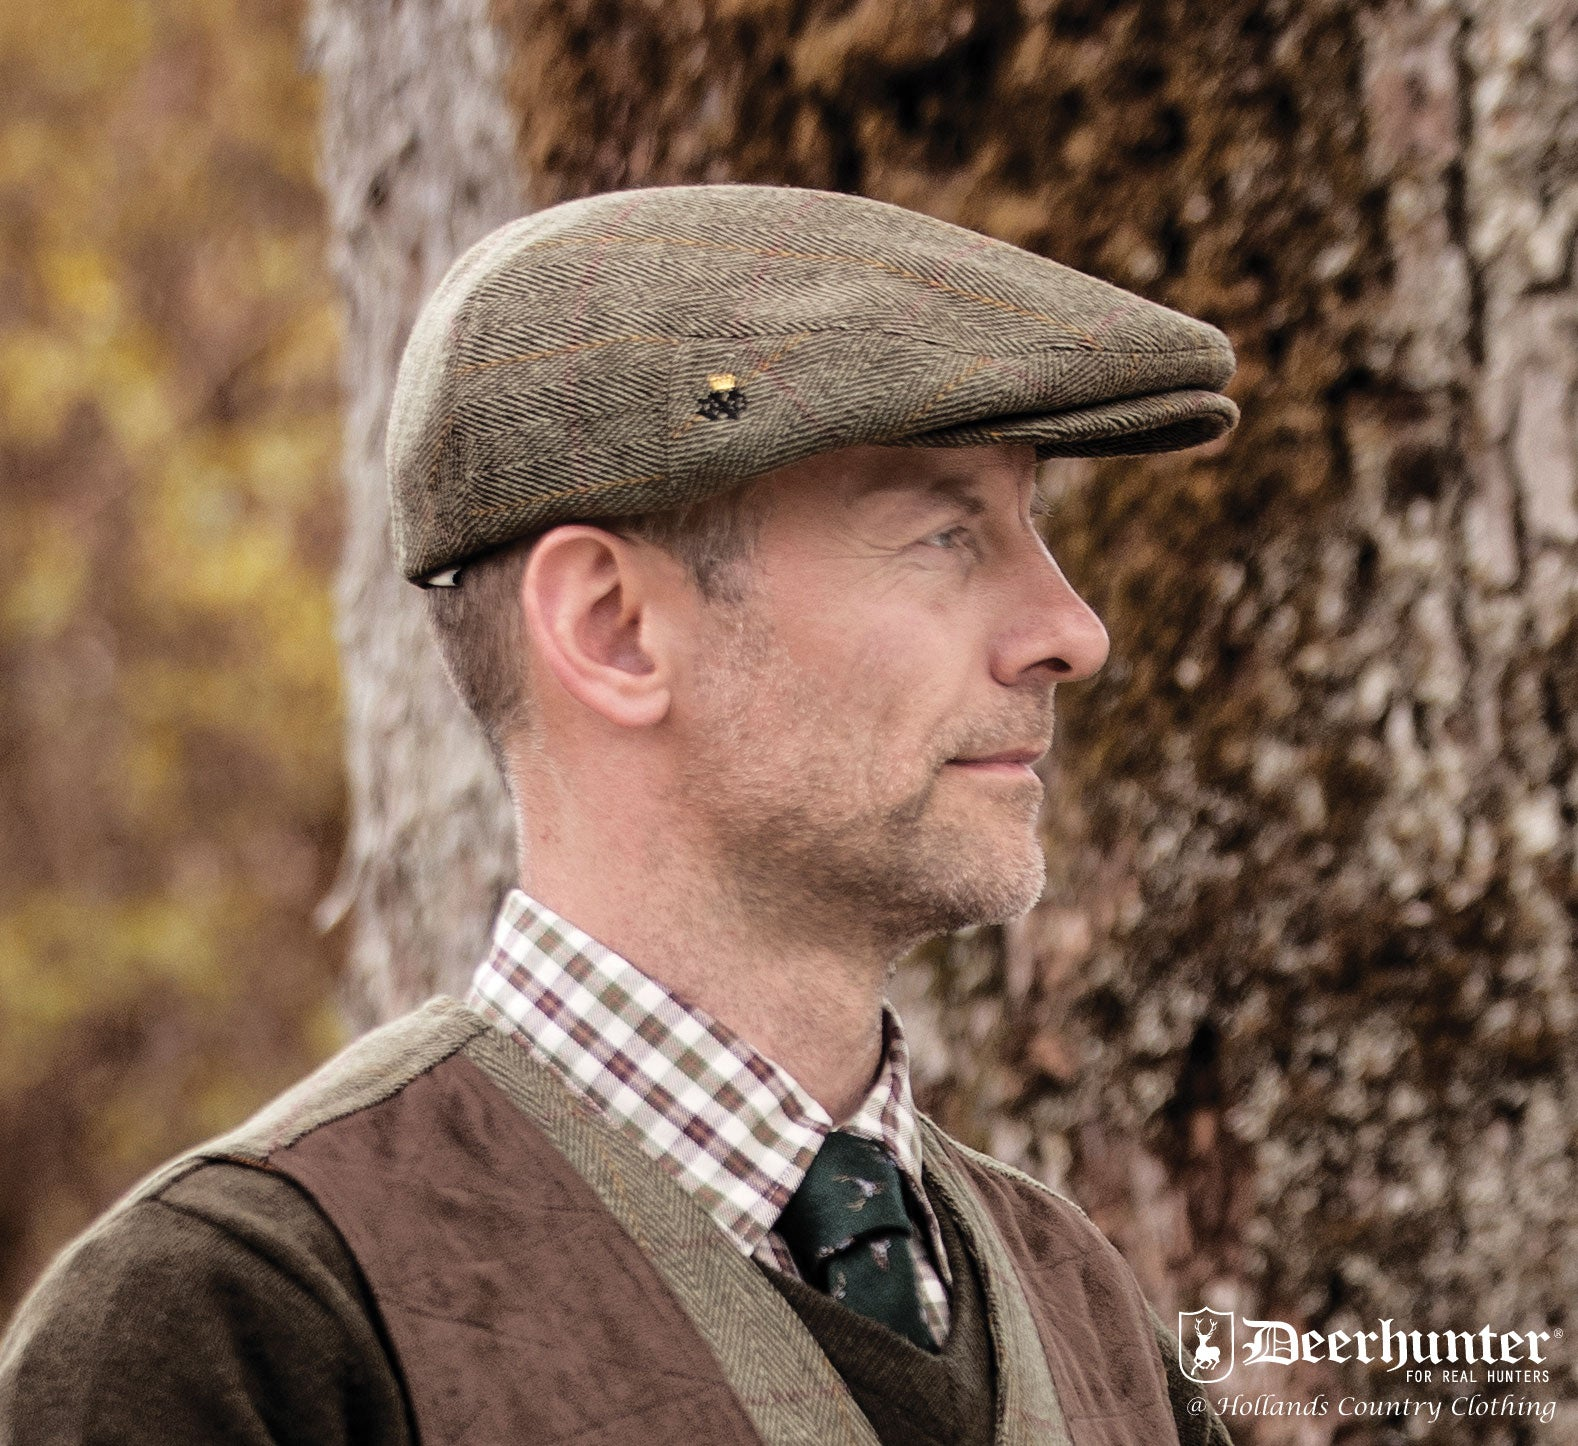 A top quality Flat Cap from Deerhunter Clothing